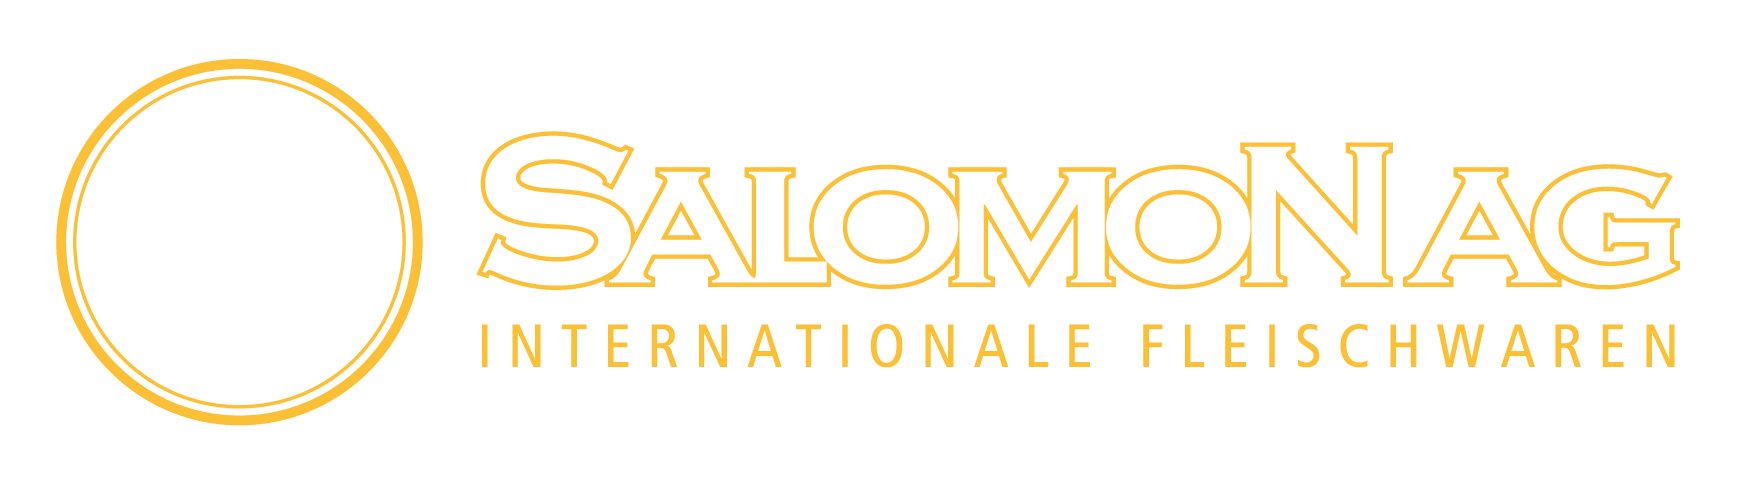 SALOMON AG - Internationale Fleischwaren